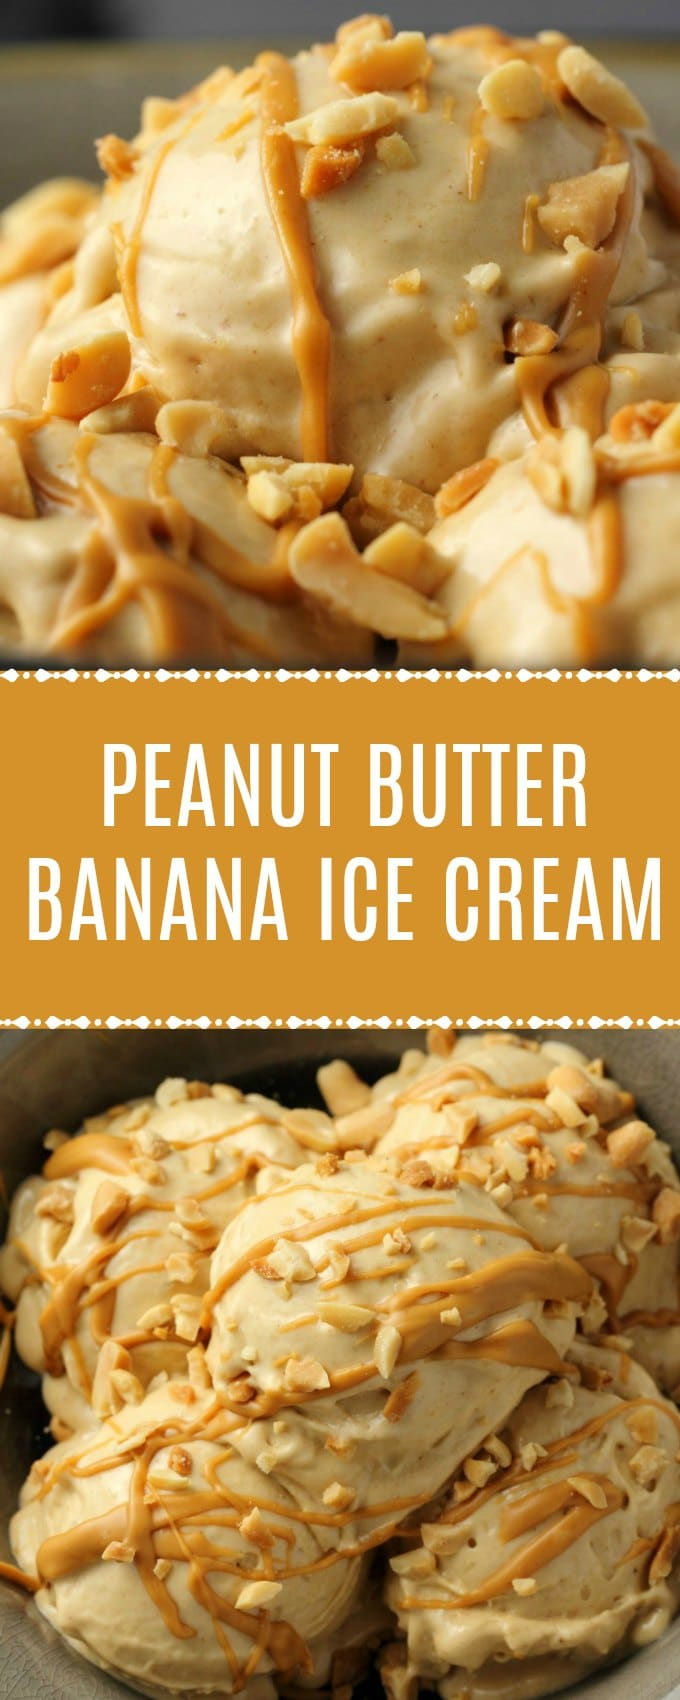 Smooth and velvety peanut butter banana ice cream, made with just 2-ingredients and a food processor! So good you'd never suspect it's healthy too! Simple, delicious, vegan and gluten-free. | lovingitvegan.com